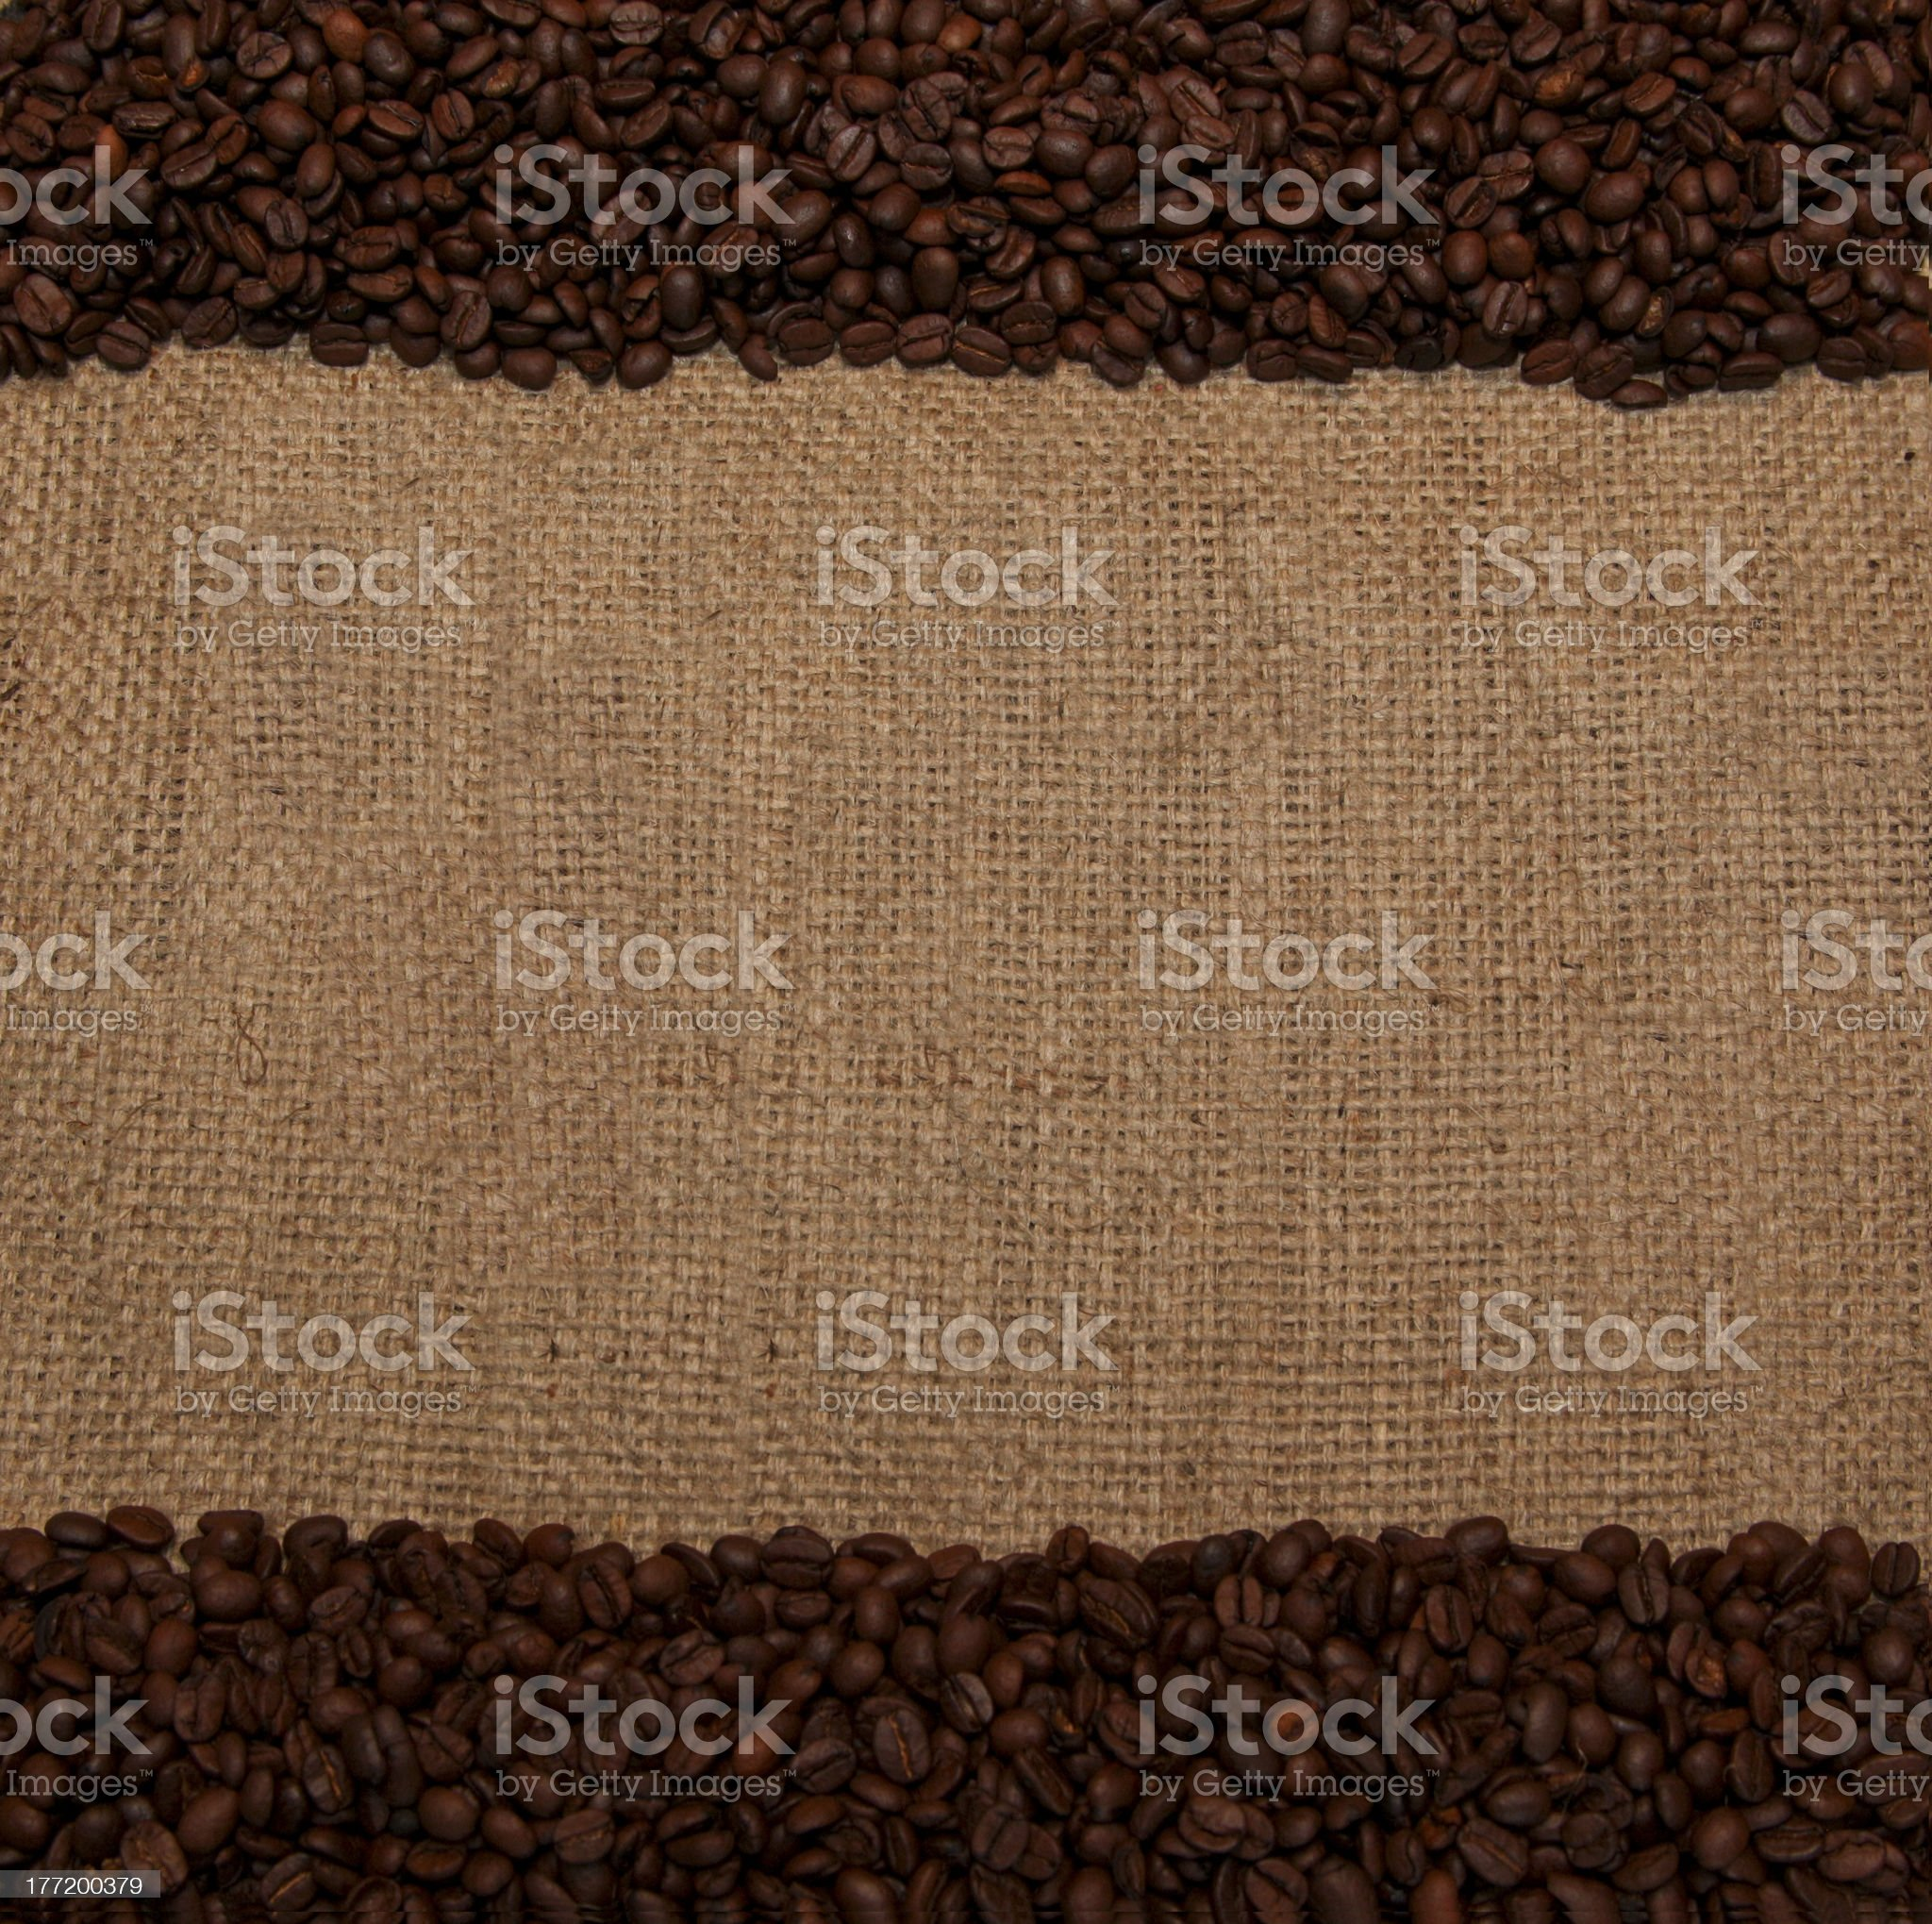 Coffee Beans on Top And Bottom of Burlap Bag royalty-free stock photo